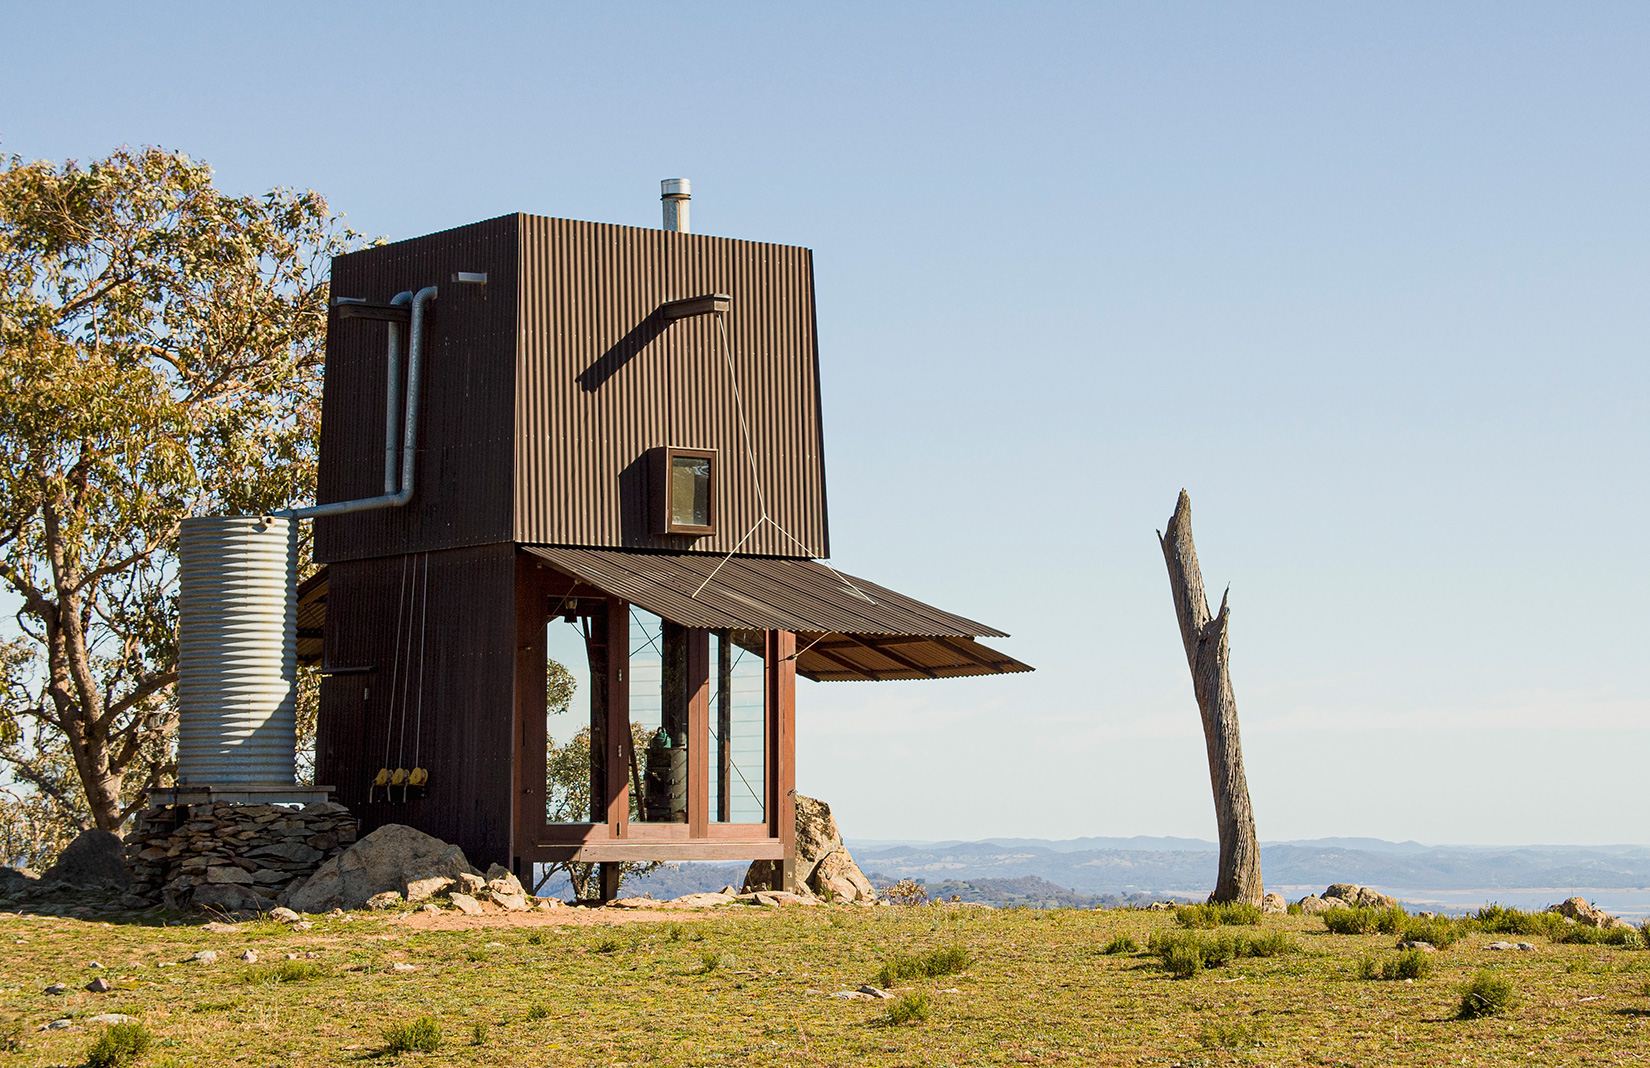 Architecture buffs can now stream Shelter – a digital platform specialising in content for design, lifestyle and outdoor living enthusiasts.